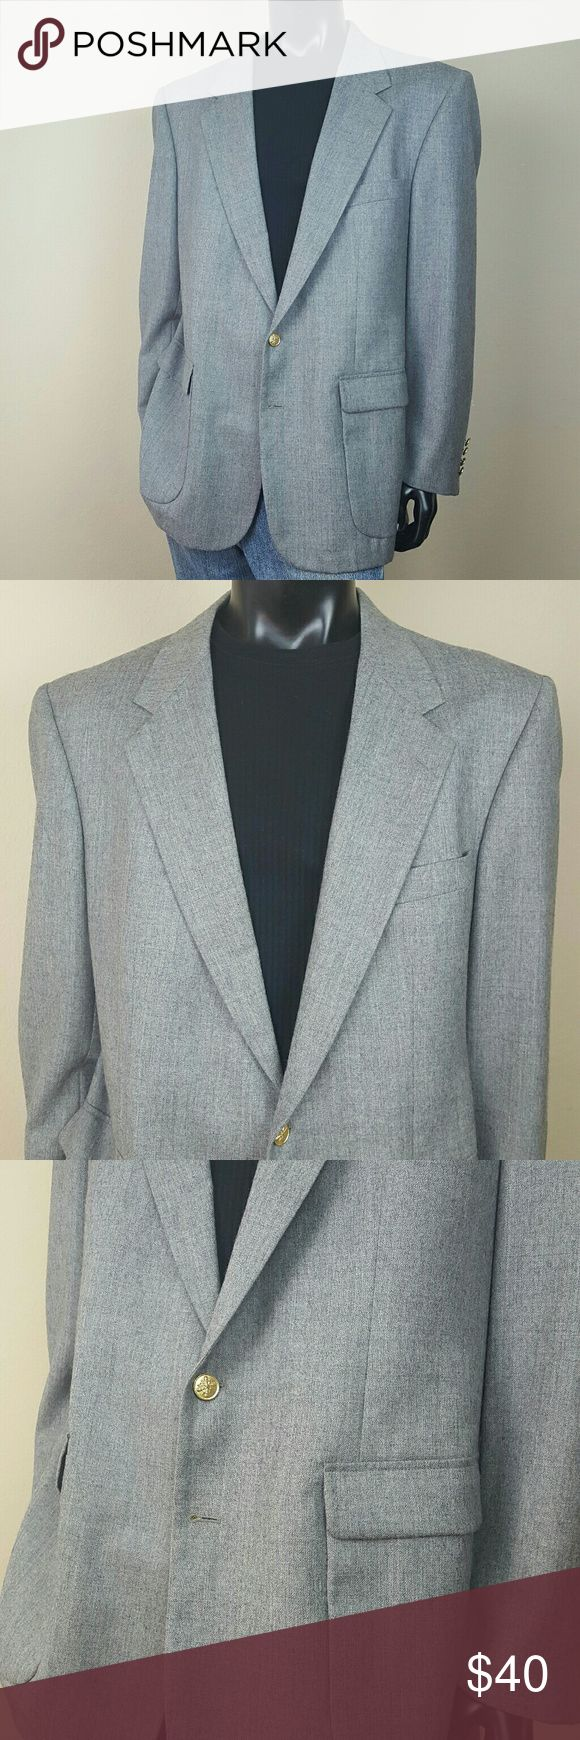 Macy's Savile Row Grey Sport Coat Blazer Excellent Used Condition. Macy's Savile Row Sport Coat Blazer. Classic Grey color and modern in fit, this gray suit jacket sets the tone for your formal style. Notch lapel, 2-button front, slant chest pocket, lower front pockets, 3 interior pockets (1 with button), fully lined, side vents, shell: polyester/rayon, lining: polyester. Size 46 Long. NO TRADES! Savile Row Suits & Blazers Sport Coats & Blazers